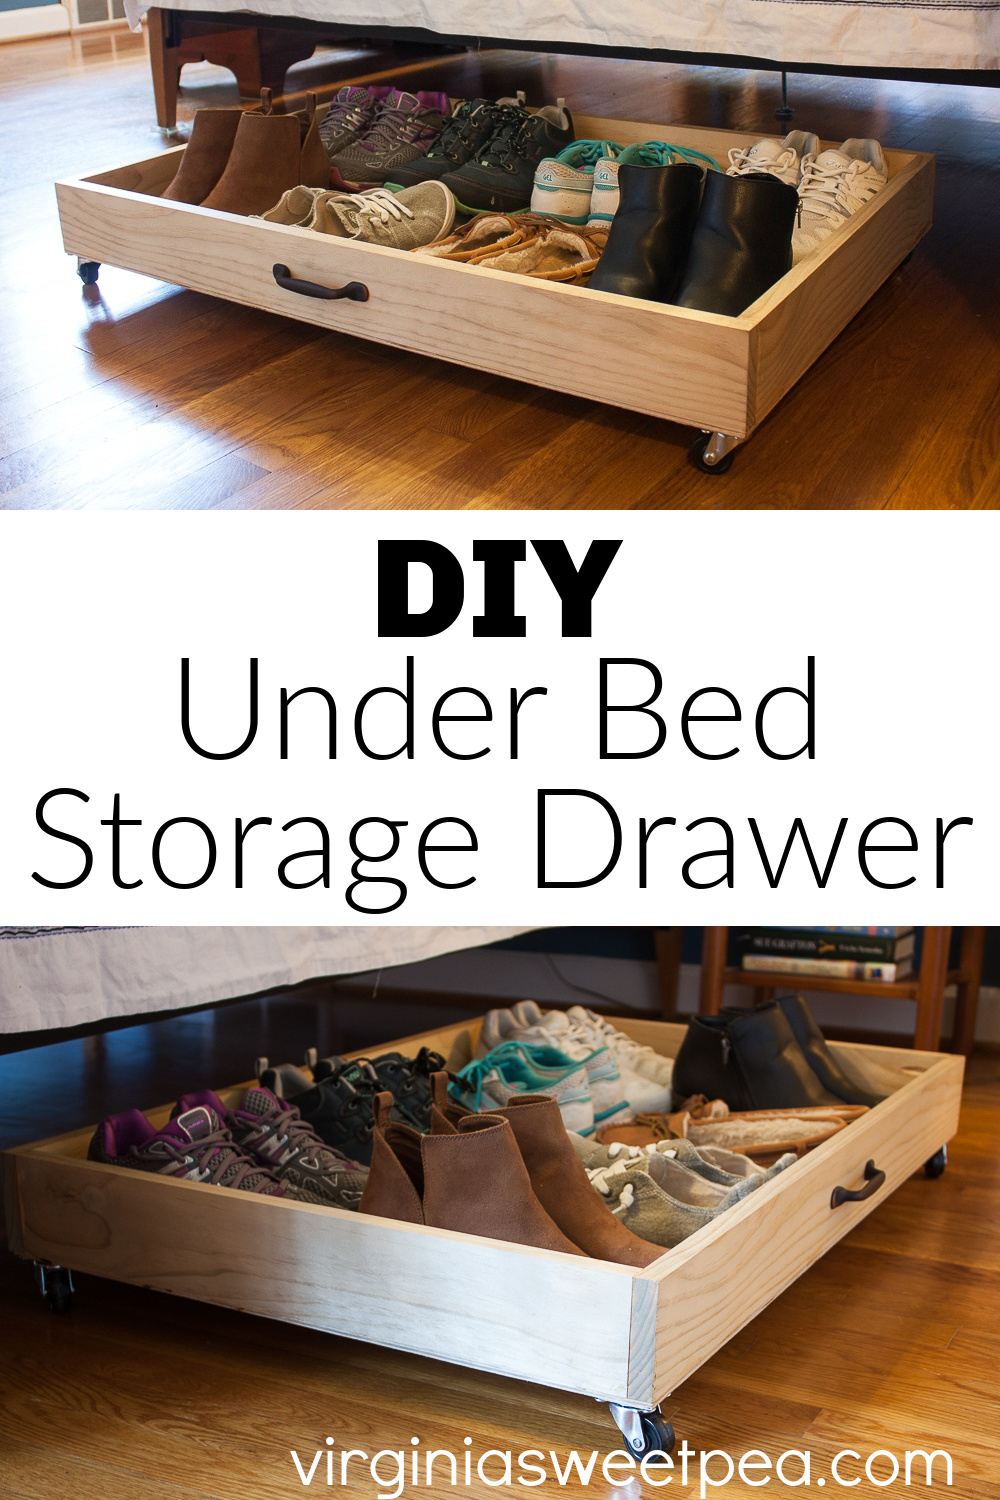 DIY Under Bed Storage Drawer - Don't let empty space under your bed go to waste! Utilize it with a DIY Under Bed Storage Drawer. The drawer holds eight pairs of shoes and easily slides under the bed thanks to swivel wheels. This also would be helpful for storing clothing or gift wrap supplies. #underbedstorage #underbedstoragedrawer #rollingdrawer via @spaula